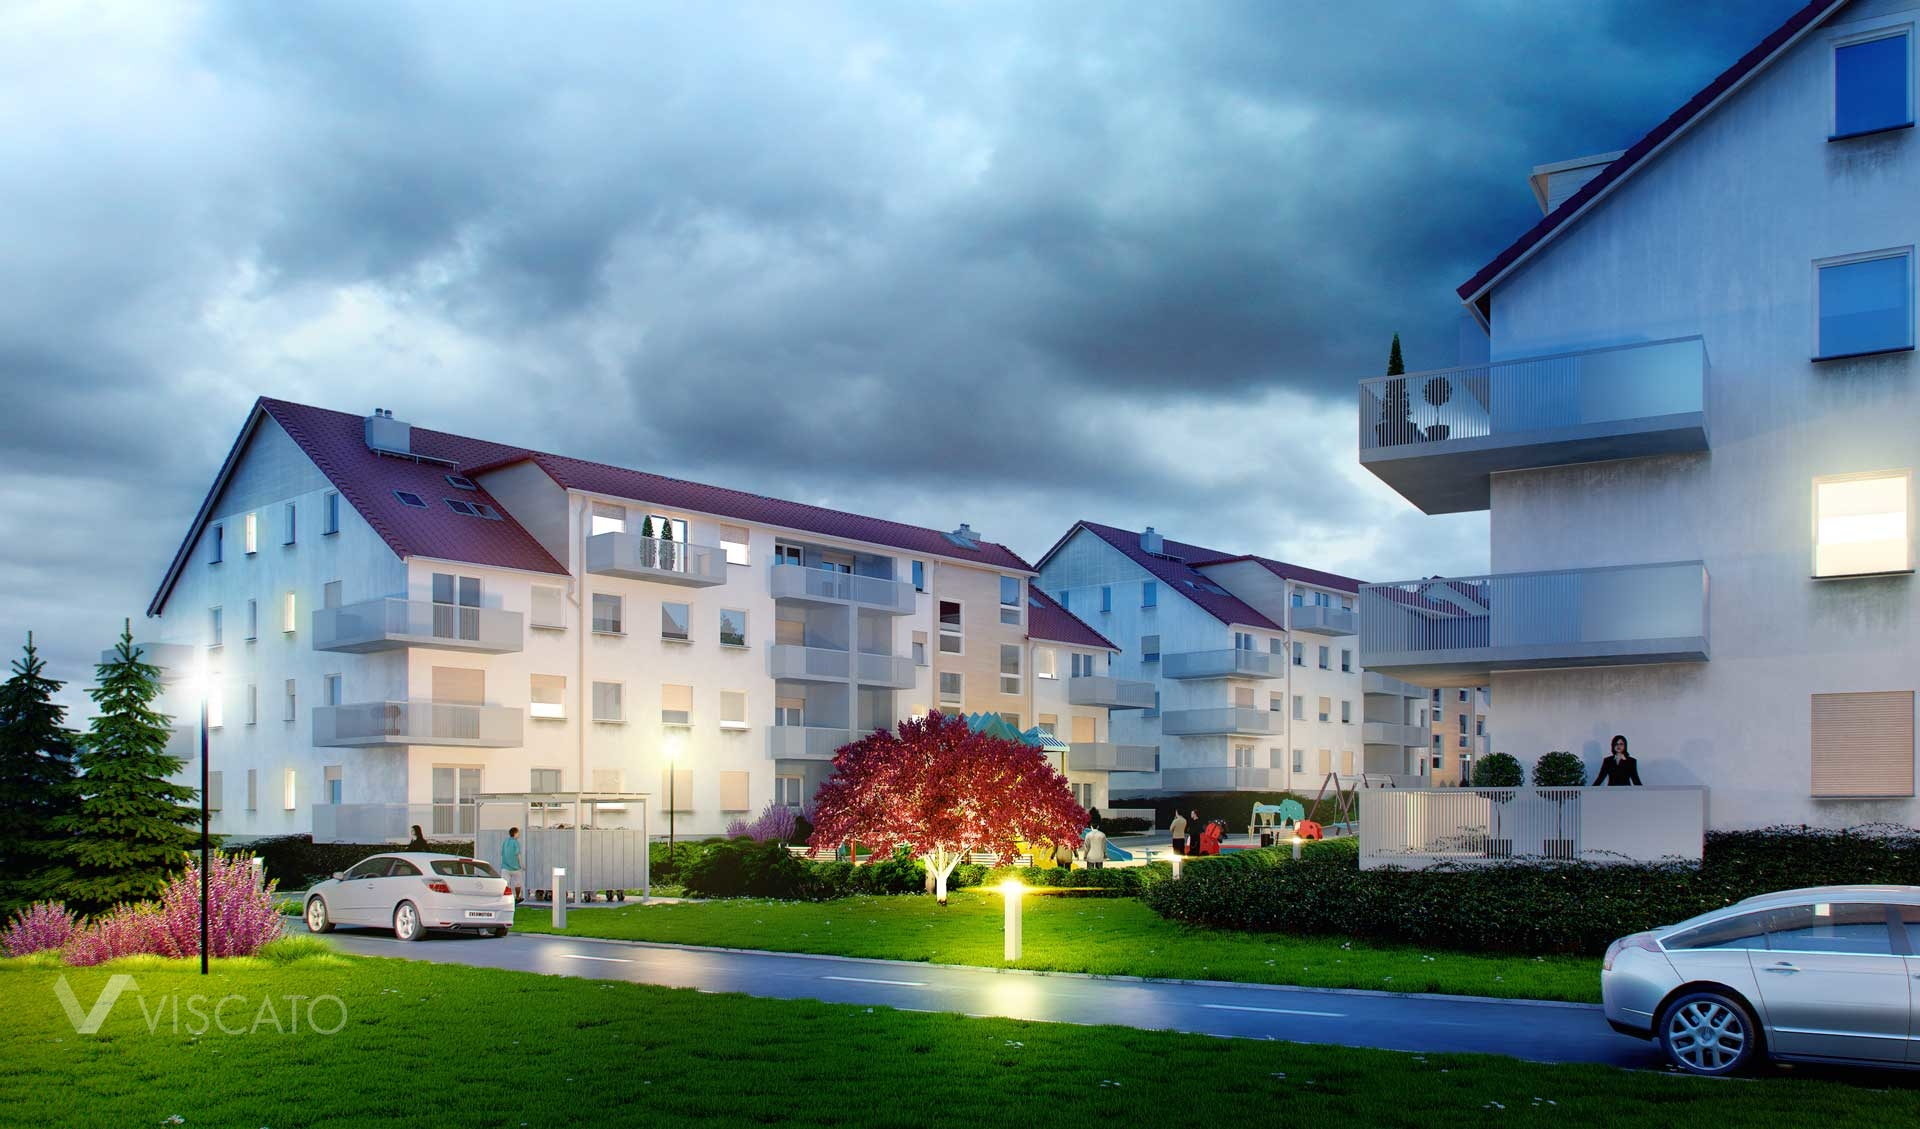 3d Visualization, by night, of housing build in Trzebnica - view on red tree, car and playground.